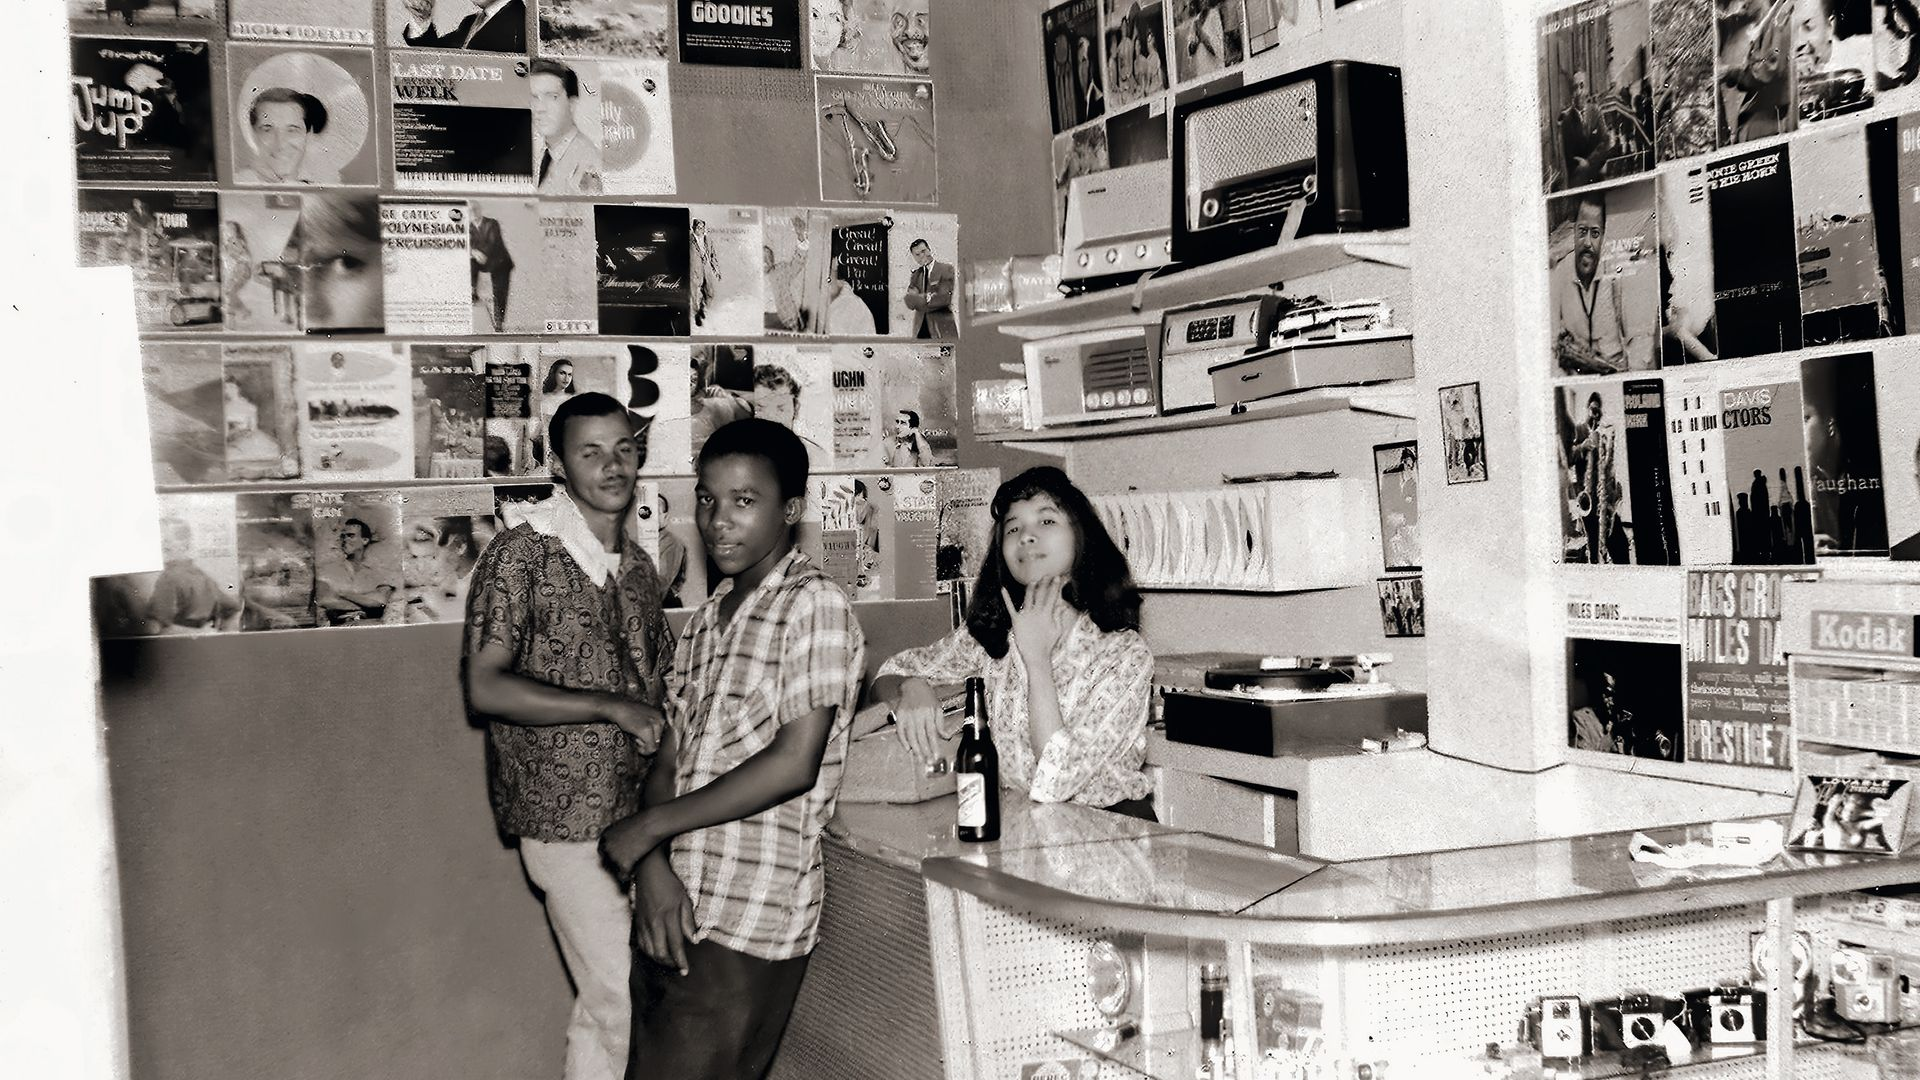 Patricia Chin behind the counter of Randy's Record Mart, in 1957 - Credit: VP